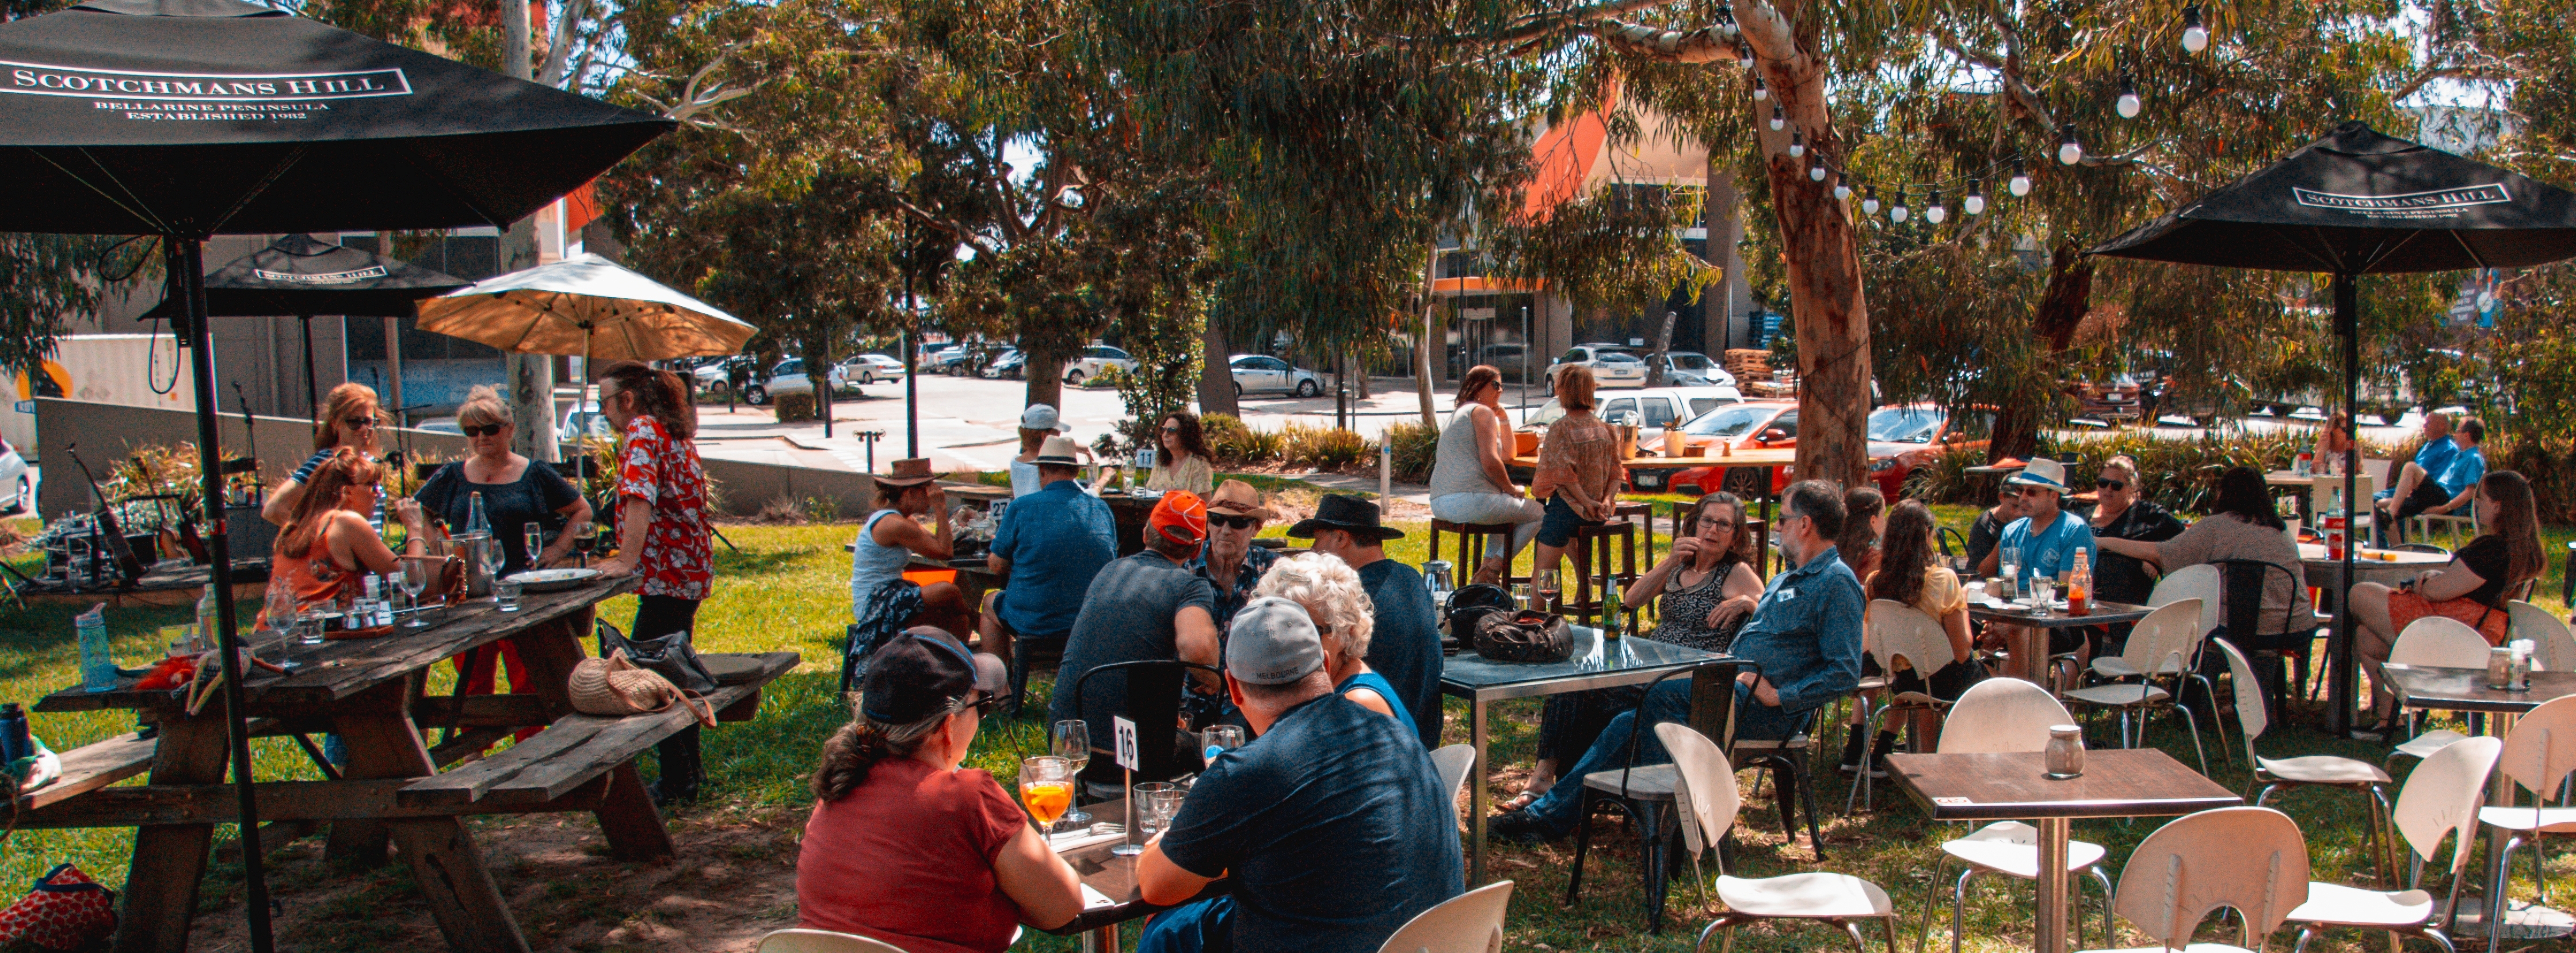 Free, Live & Acoustic Music On The Lawns - Every Saturday & Sunday Afternoon